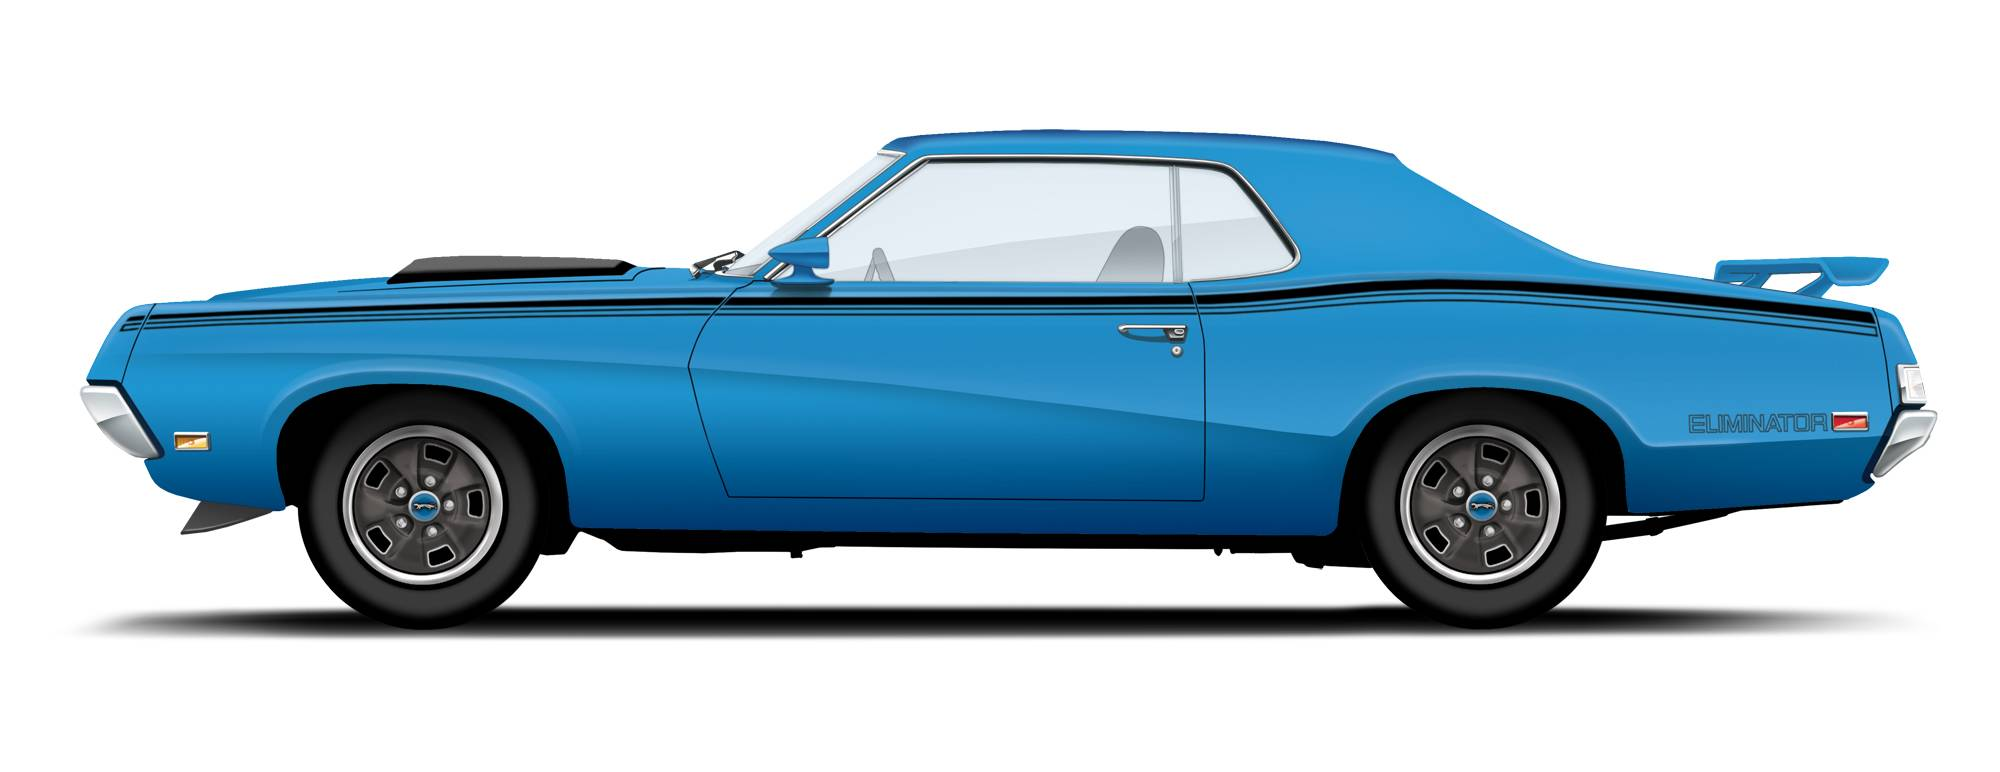 small resolution of photo courtesy hemmings archives 1970 mercury cougar eliminator